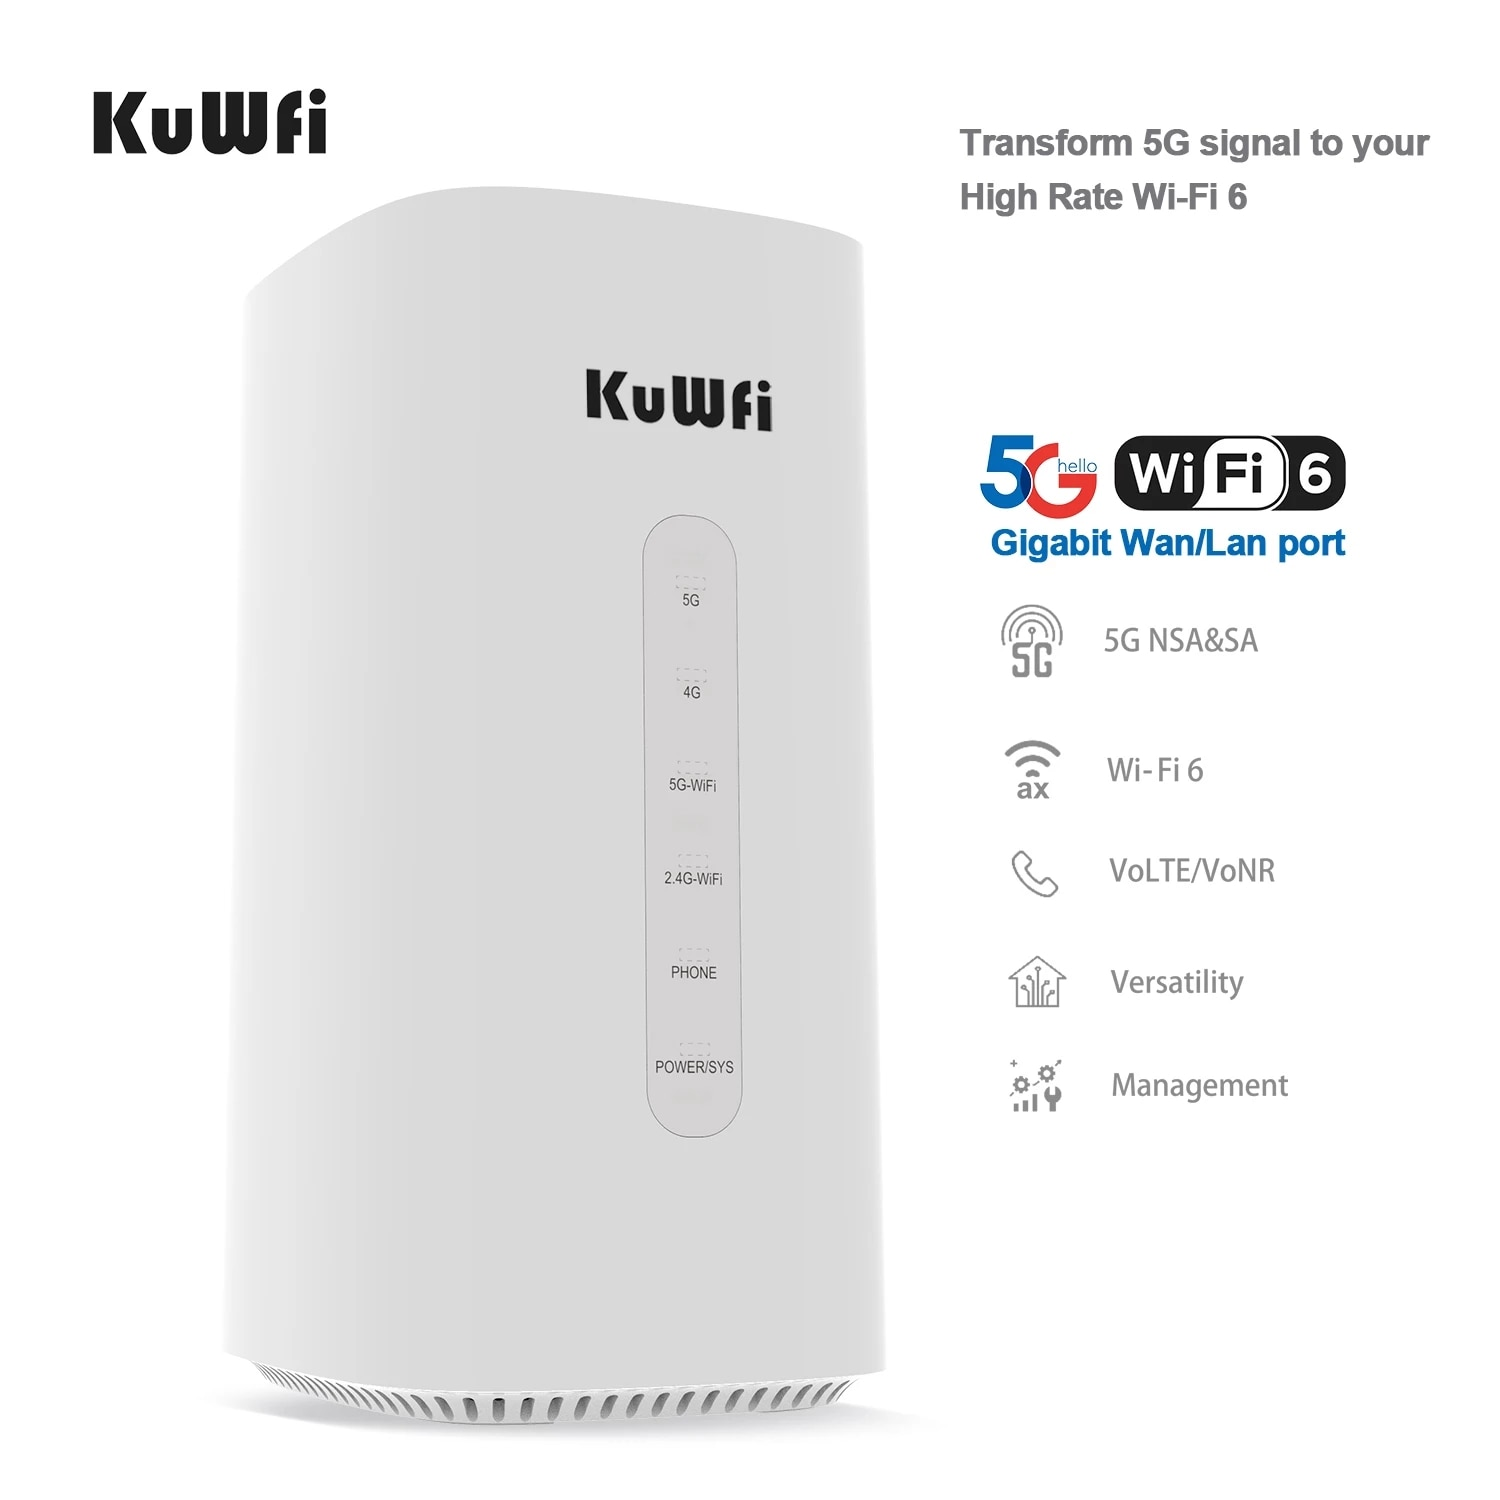 KuWFi 5G Wireless Router CPE& LTE-A Coverage 802.11ax 2.5Gbps  Unlocked High Rate Gigabit Wi-Fi 6  4G WiFi 5G NR networkRouter